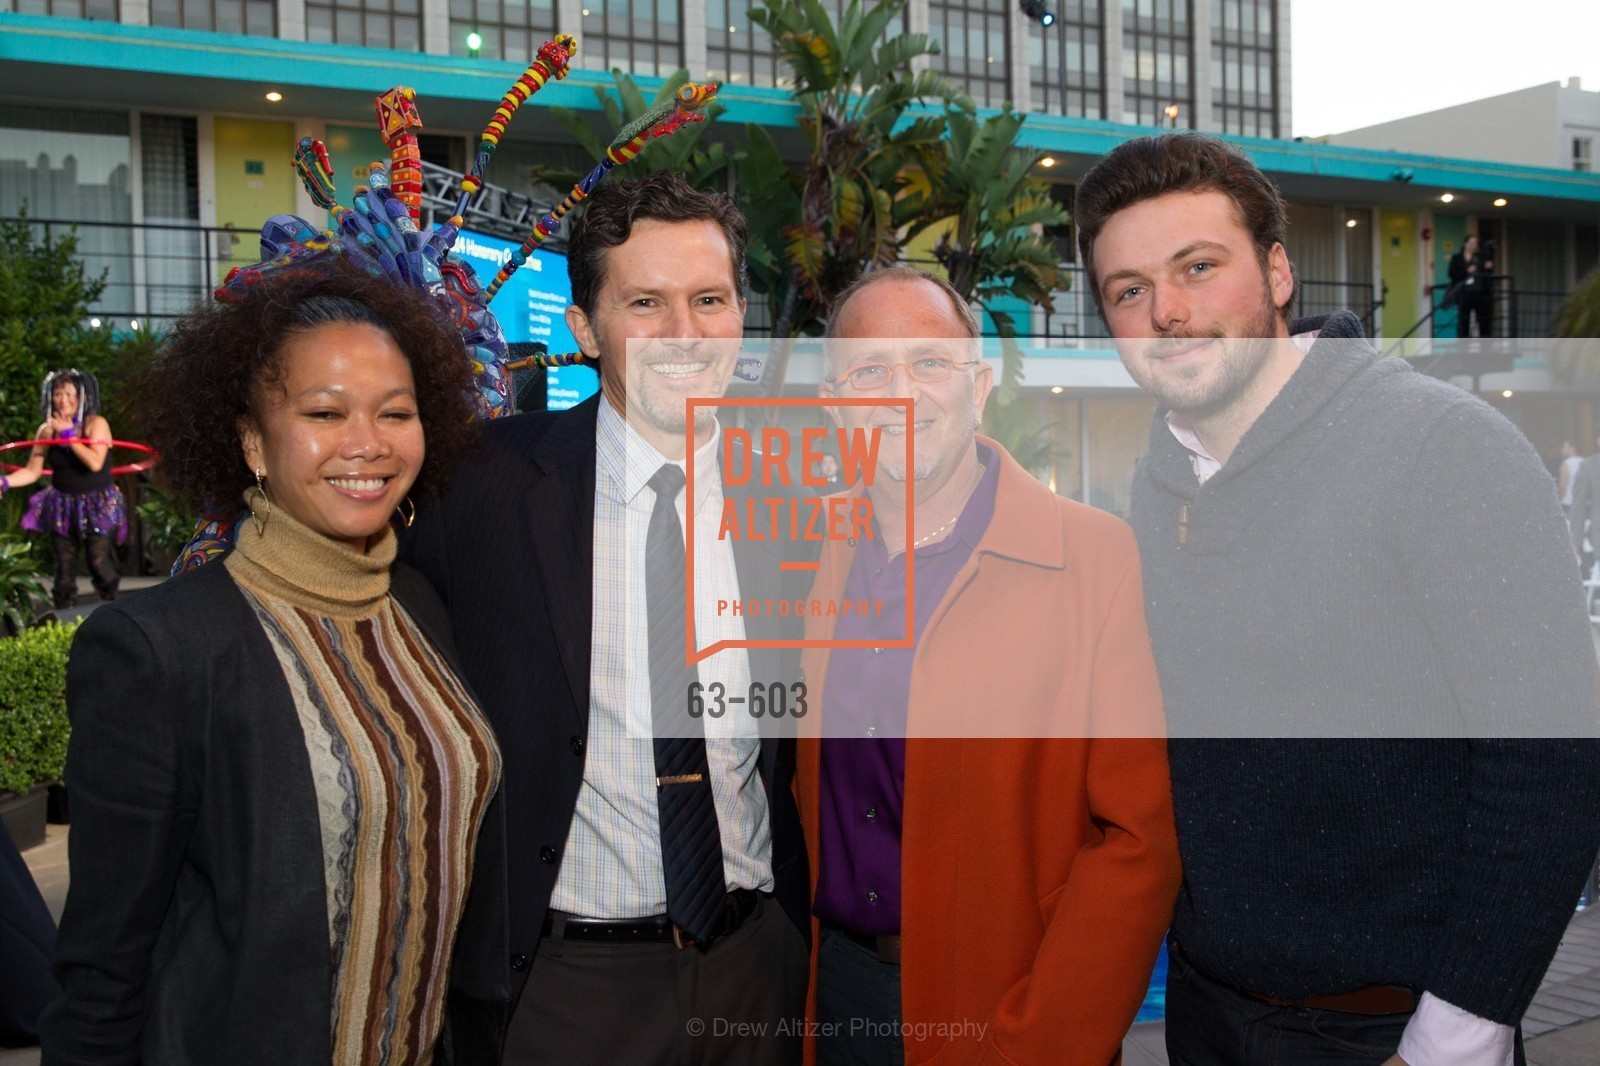 Dori Caminong, Curtis Maughlin, Charles Zukow, James Smith, 22nd Annual TNDC CELEBRITY POOL TOSS, US, October 8th, 2014,Drew Altizer, Drew Altizer Photography, full-service agency, private events, San Francisco photographer, photographer california